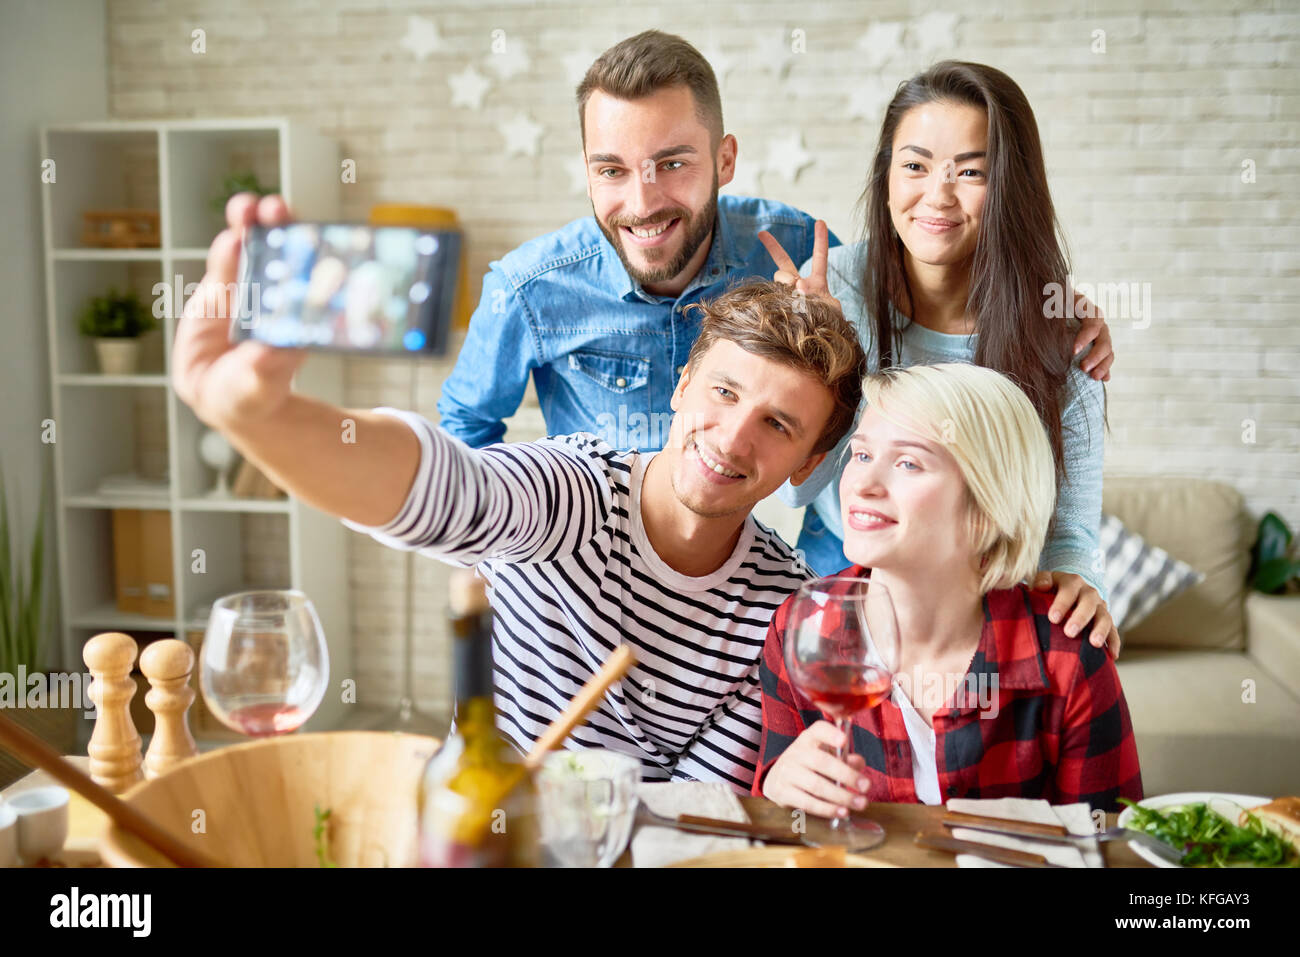 Friend Posing for Selfie at Dinner Party - Stock Image